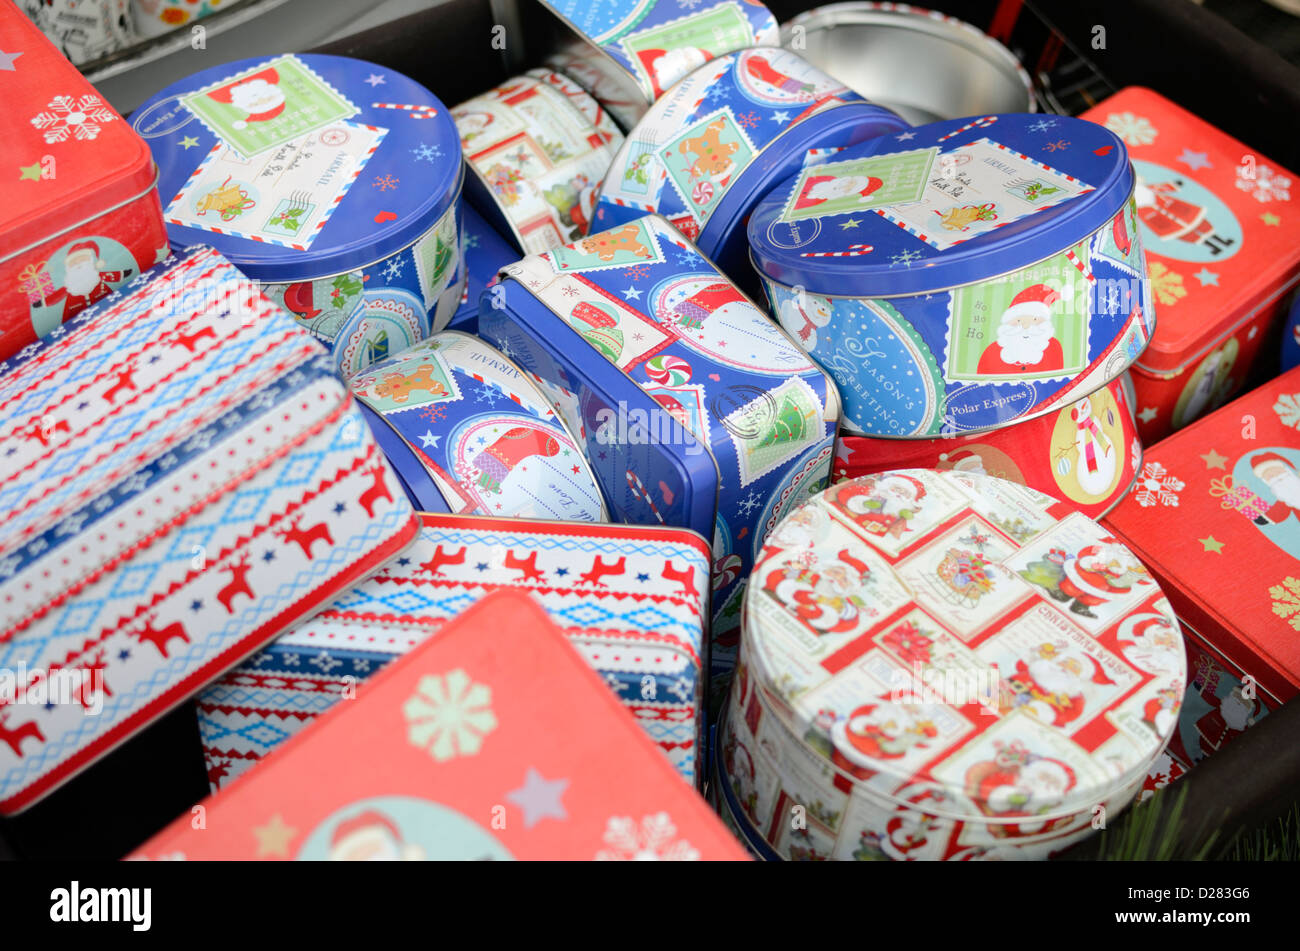 Christmas gift biscuit tins in a shop display Stock Photo: 53038838 ...